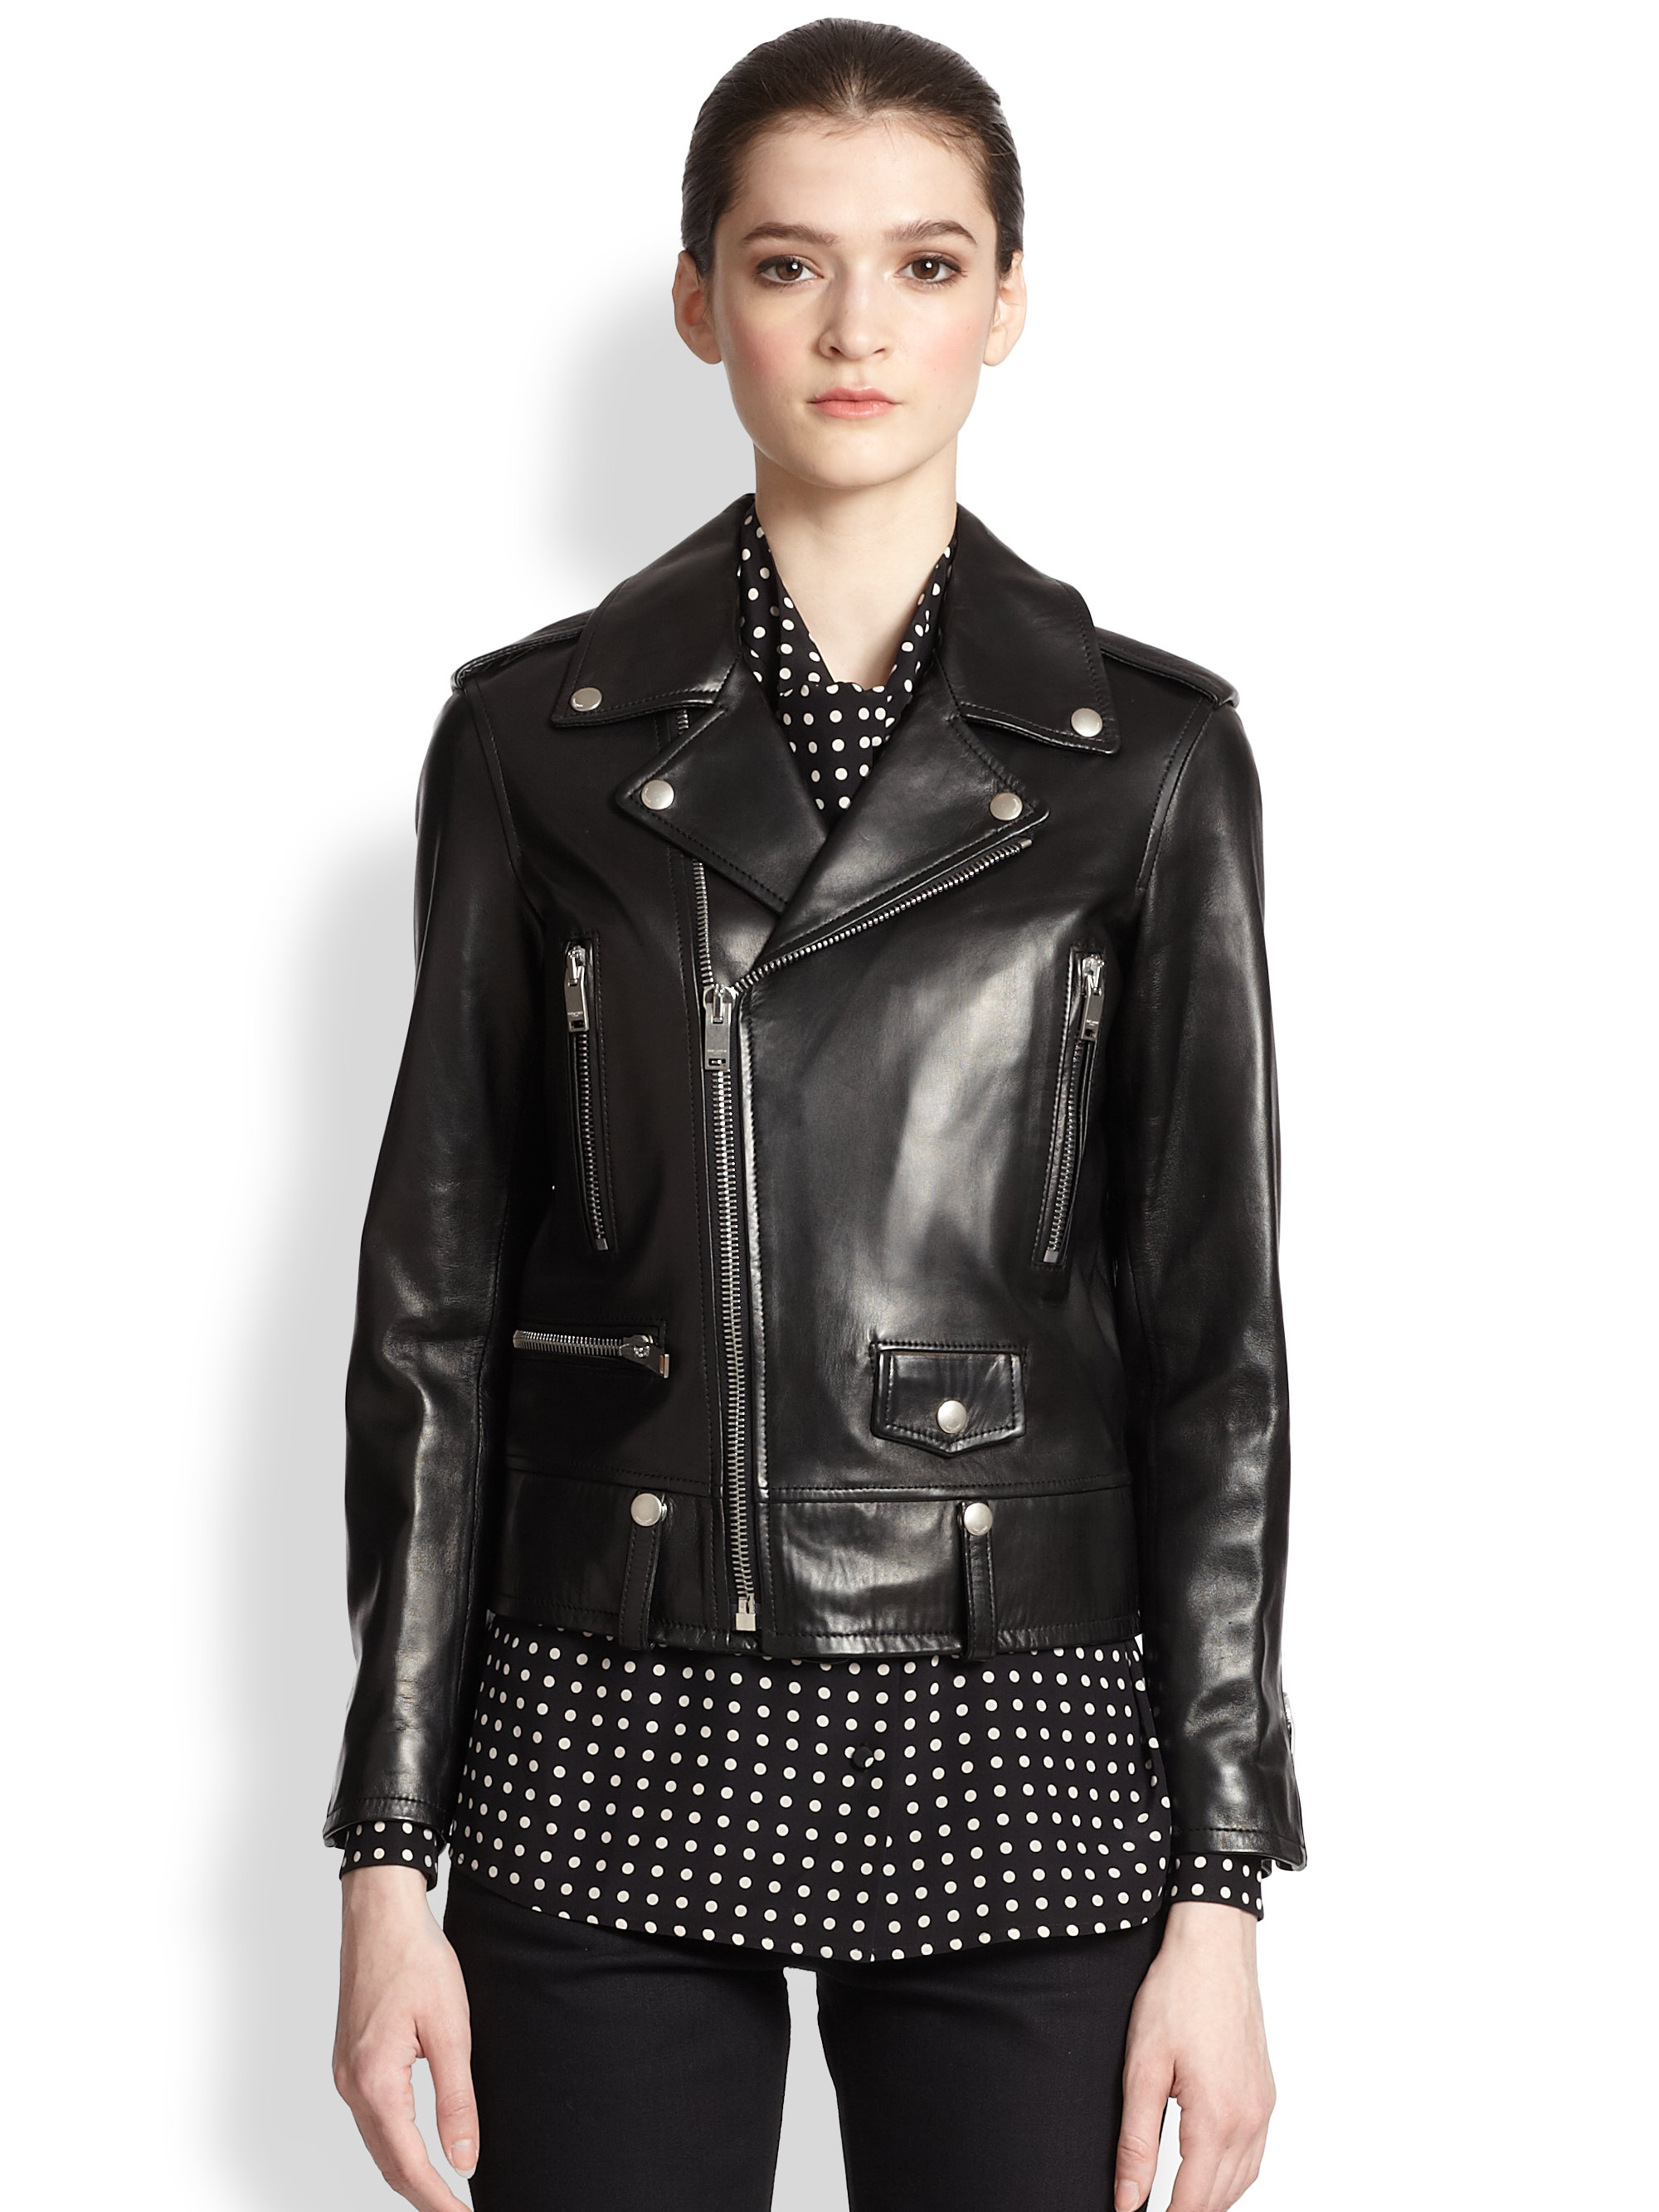 Saint laurent Classic Leather Motorcycle Jacket in Black | Lyst